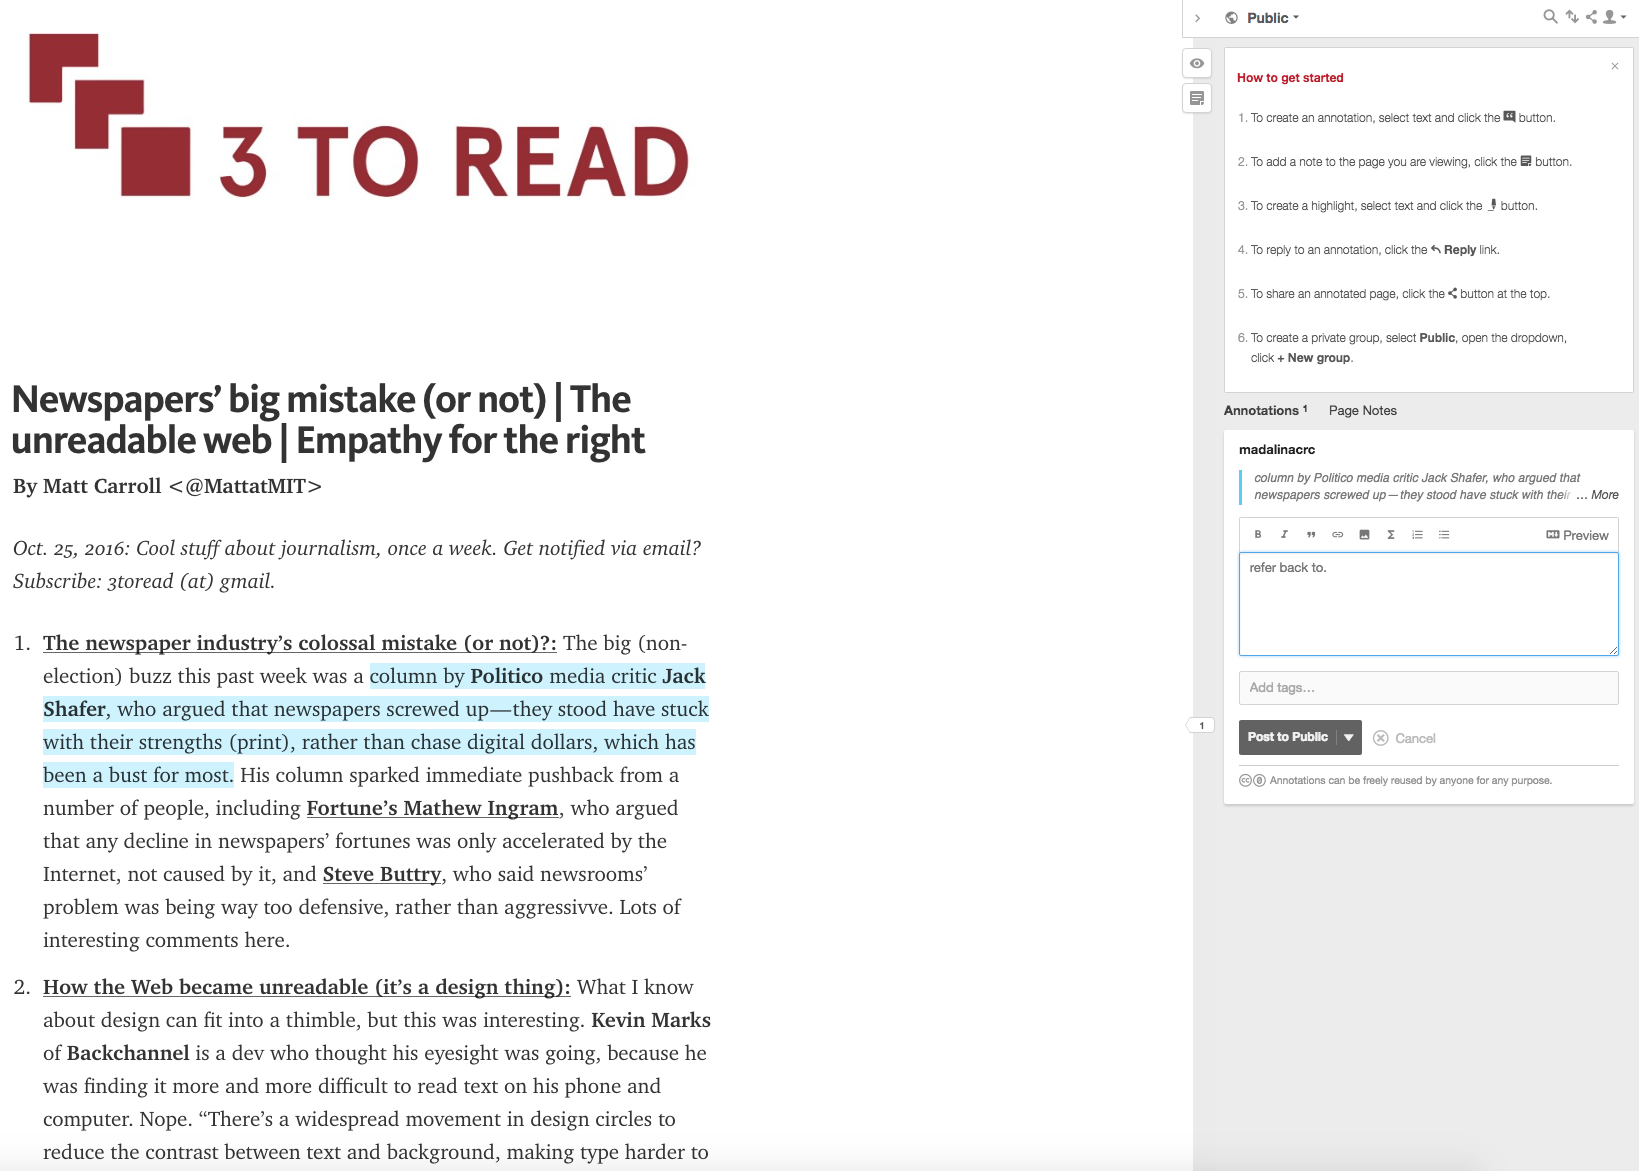 Highlights Are Marked In Yellow And Are Only Visible To The Author, While  Annotations Include Text Formatting Options And Can Be Public, Private Or  Shared